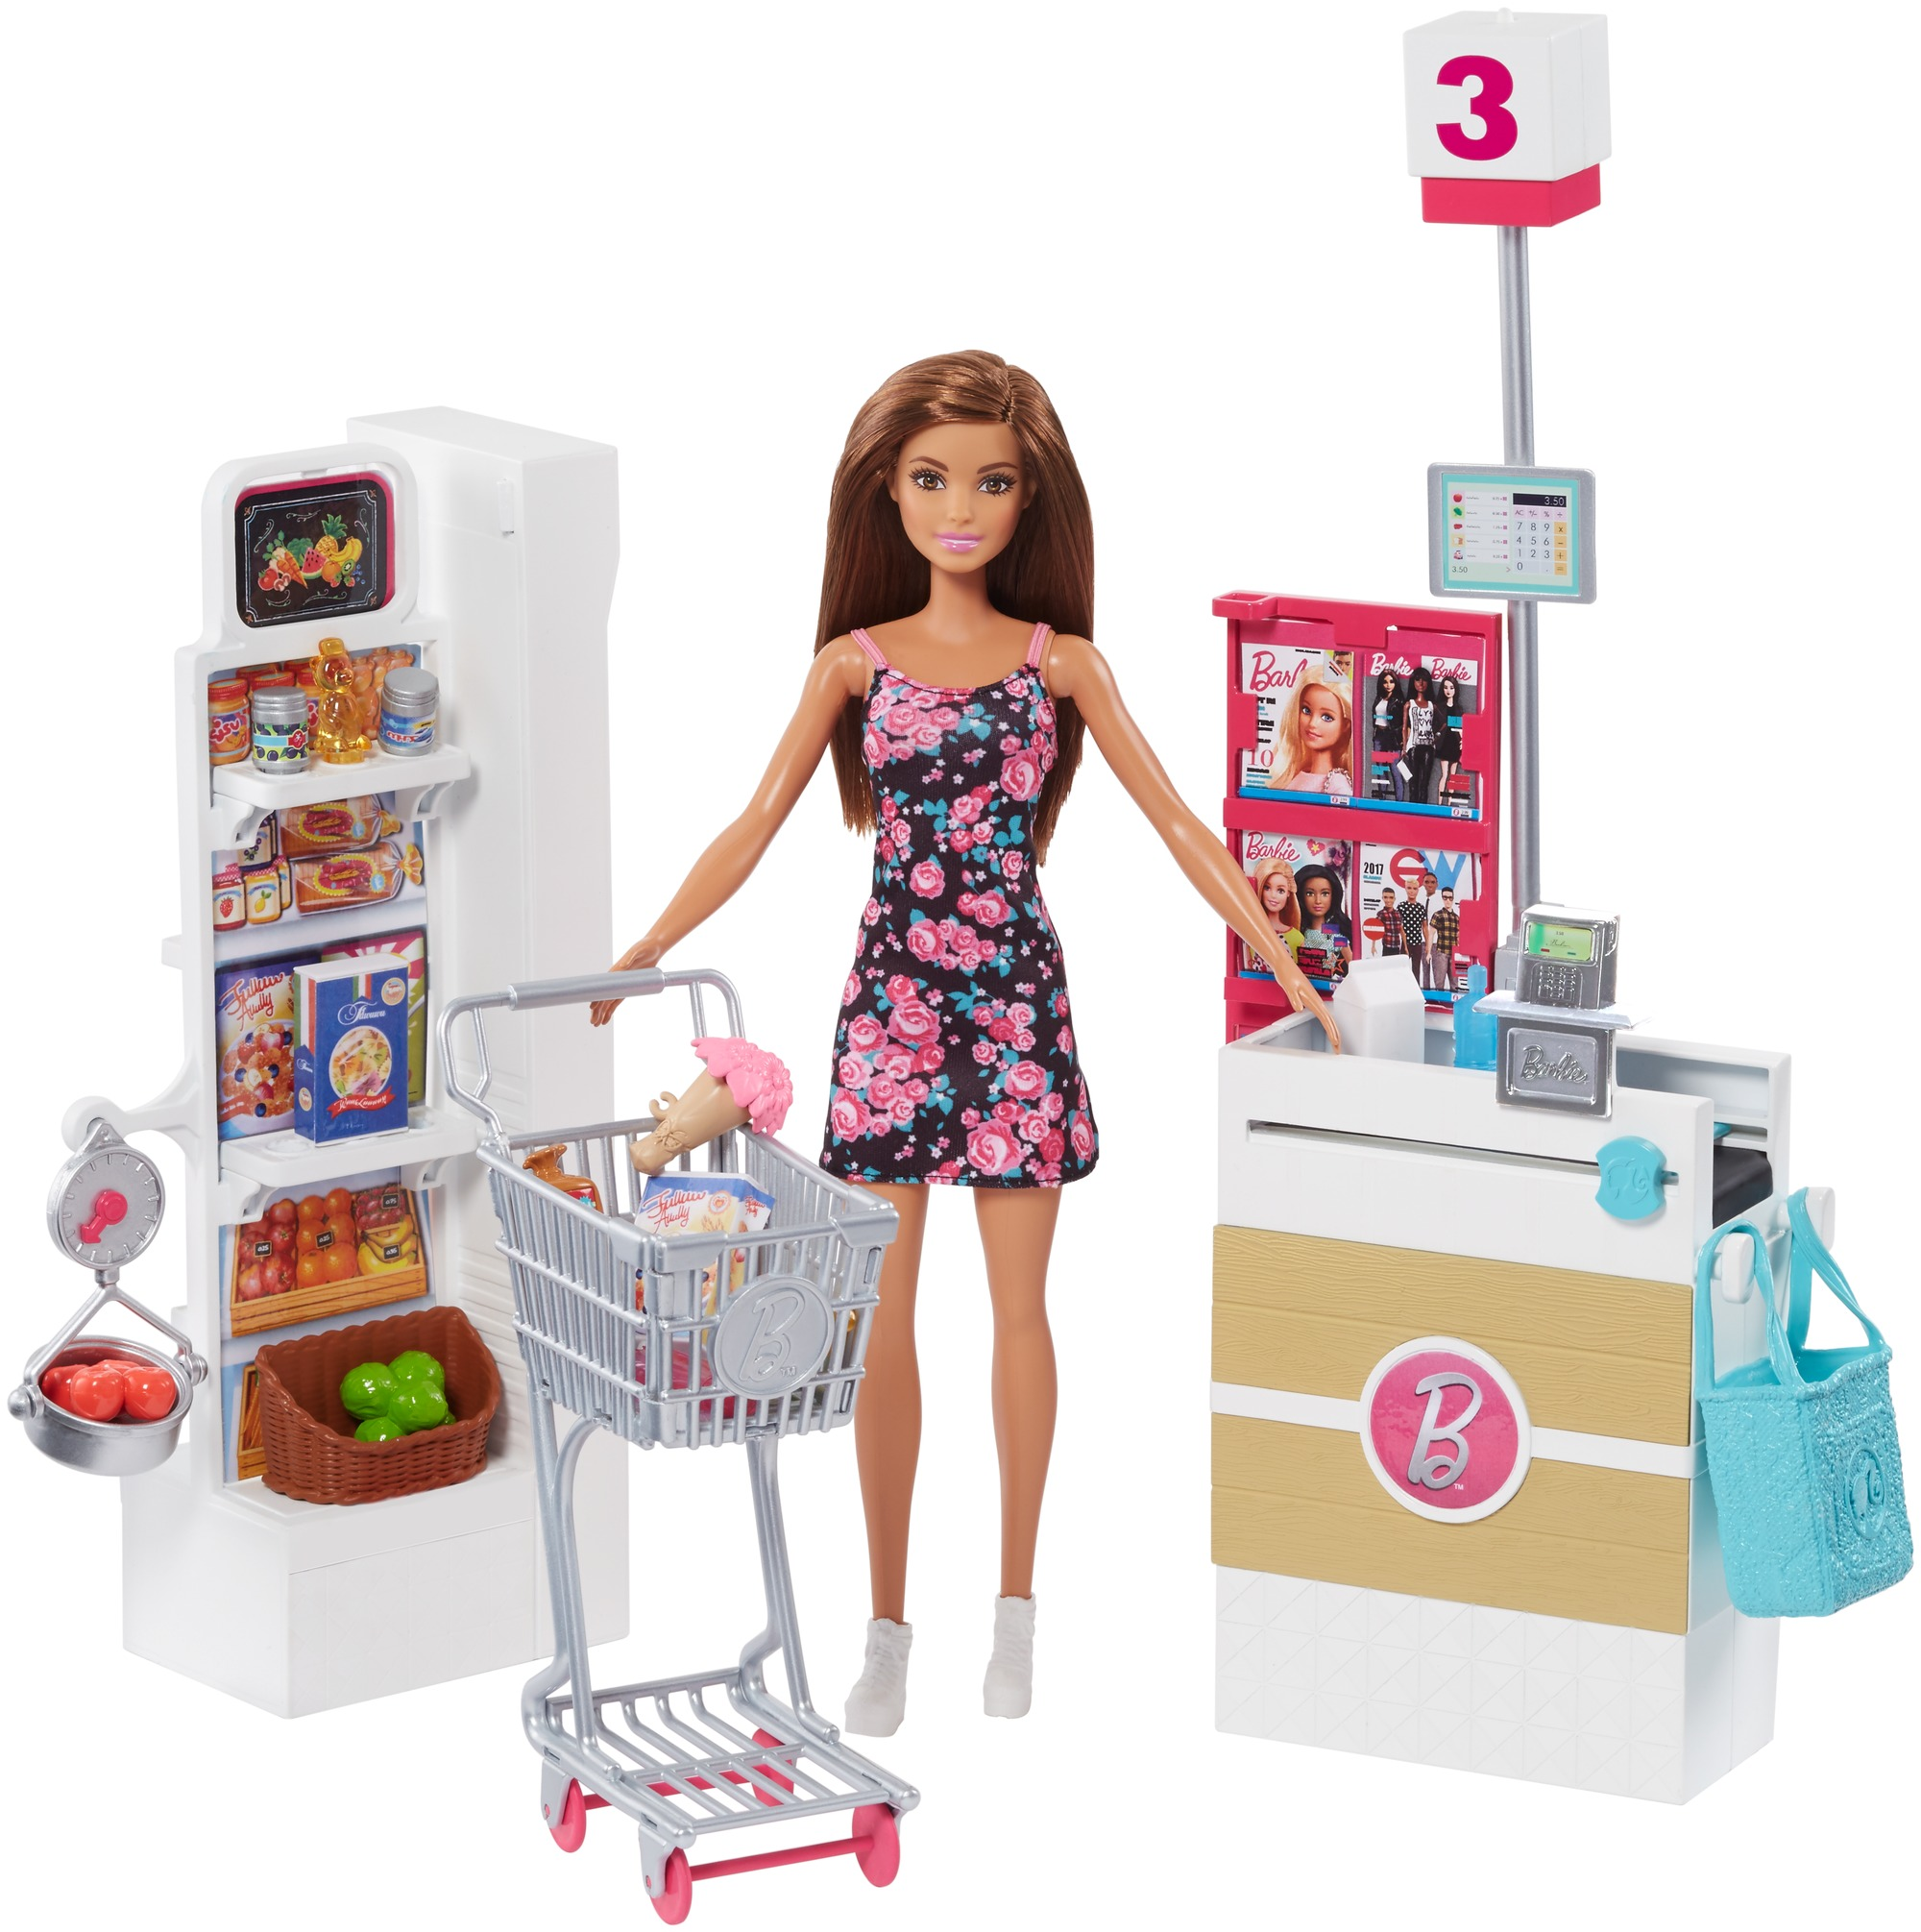 Barbie Supermarket Playset, Brown Hair by Mattel